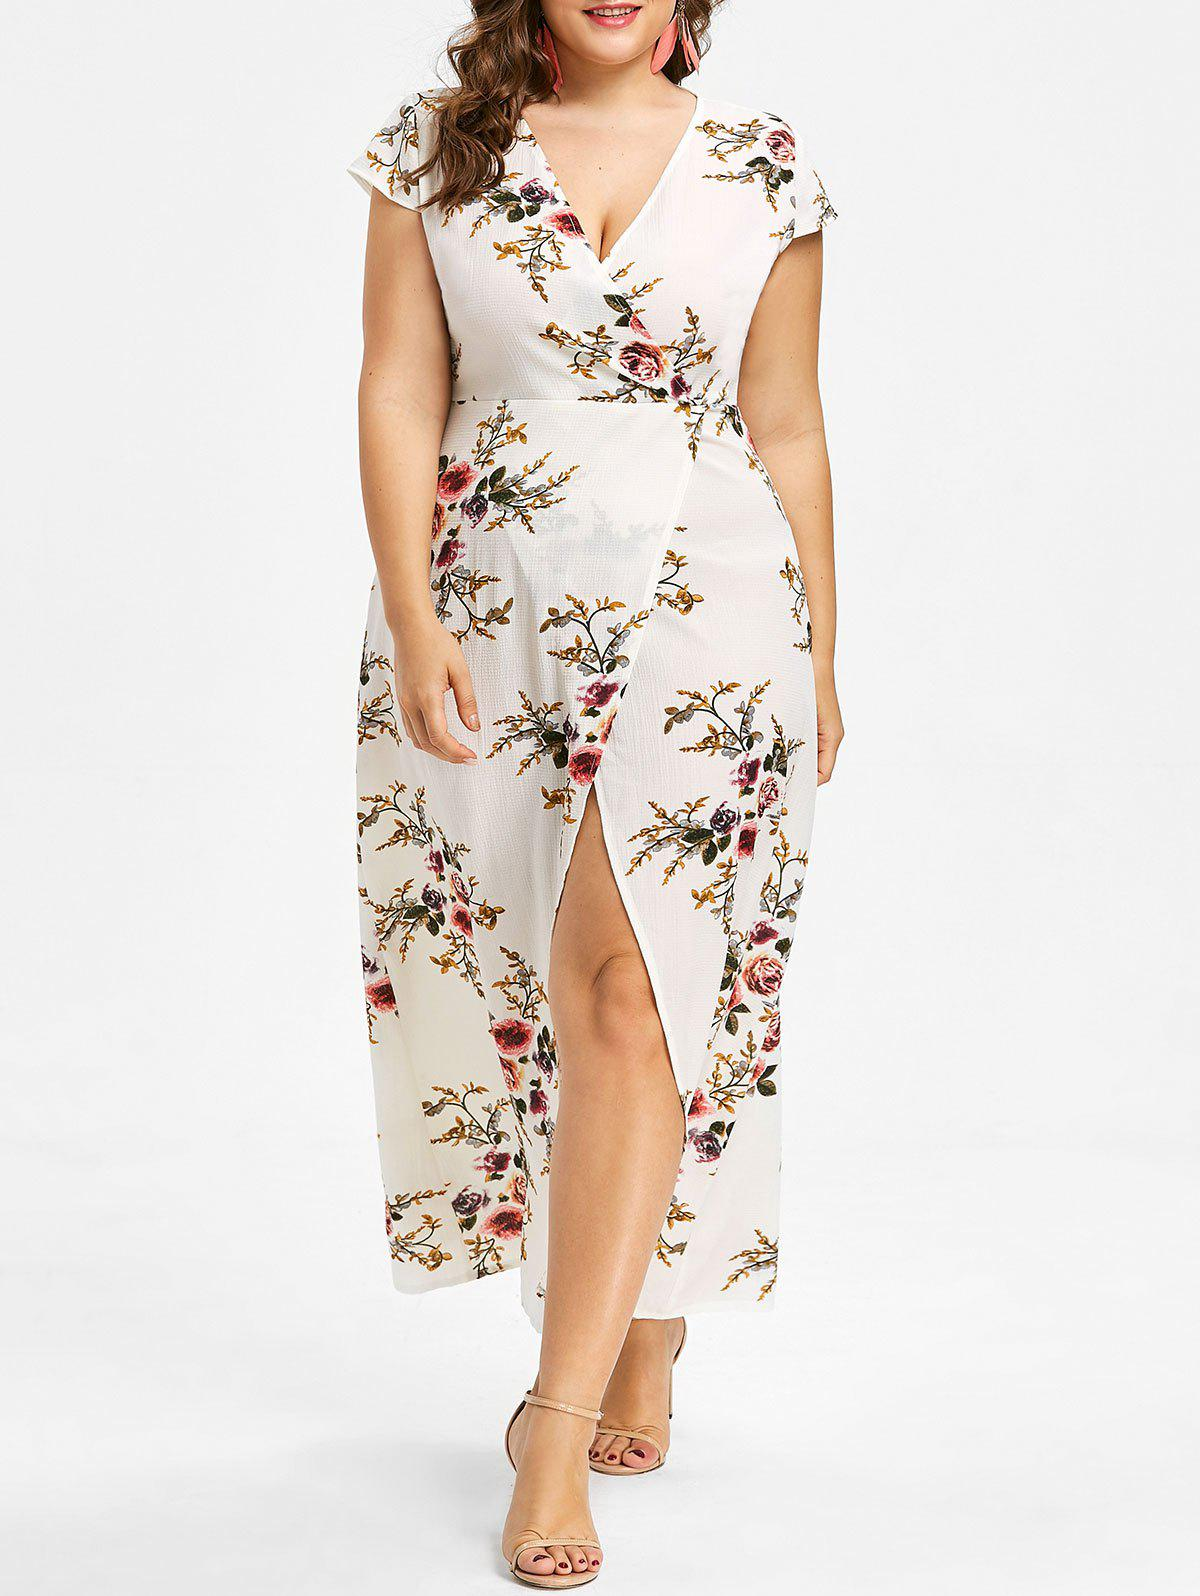 38% OFF] Cap Sleeve Plus Size Floral Print Maxi Dress | Rosegal